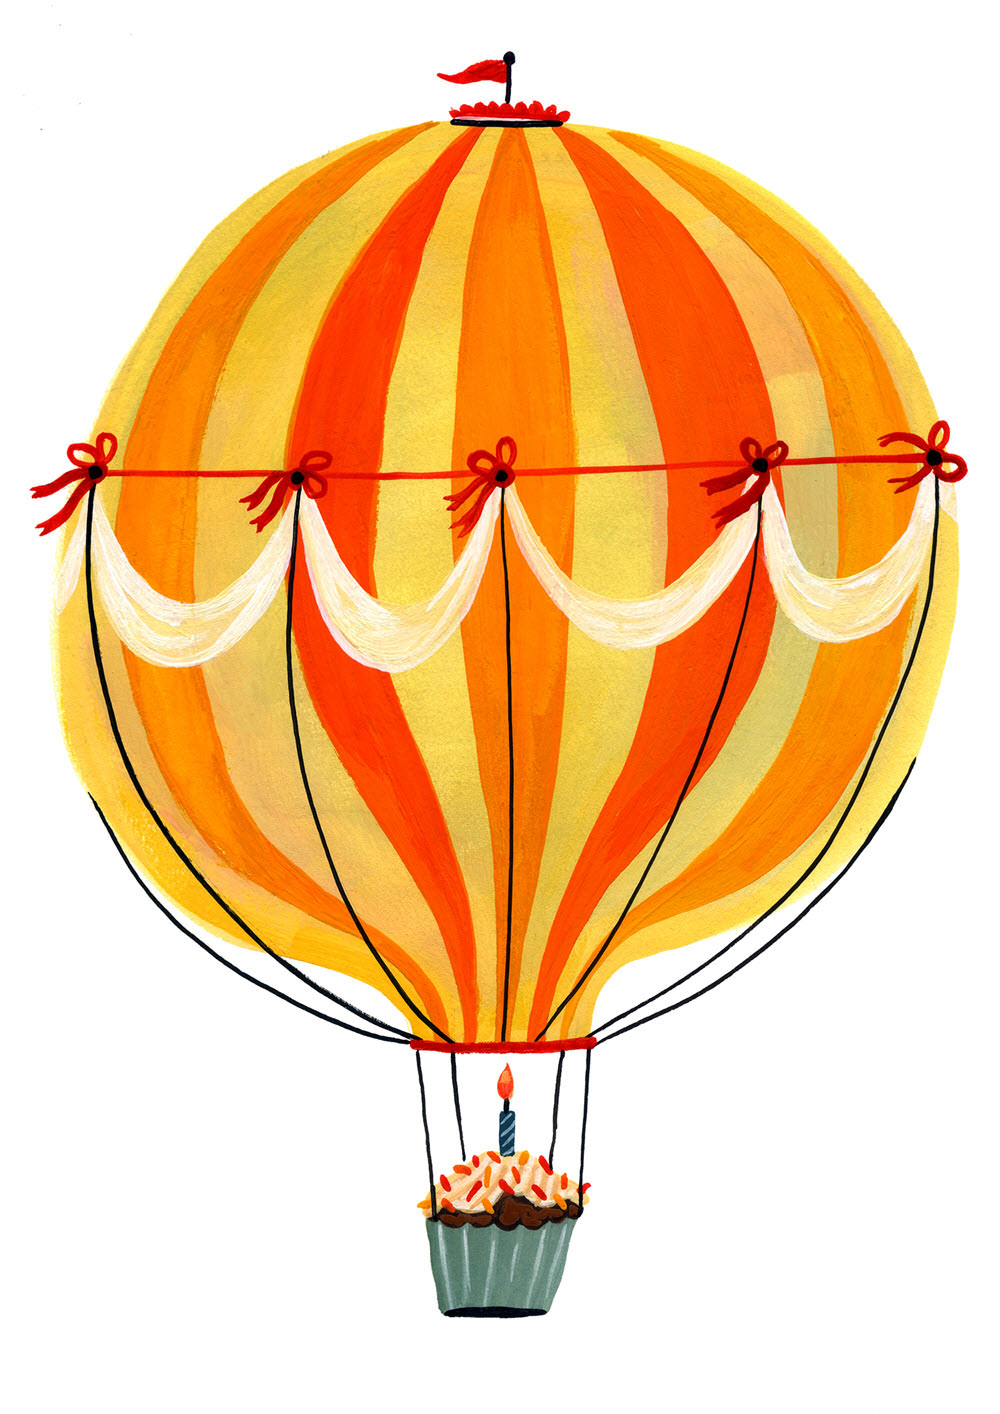 Hot Air Balloon - MH798